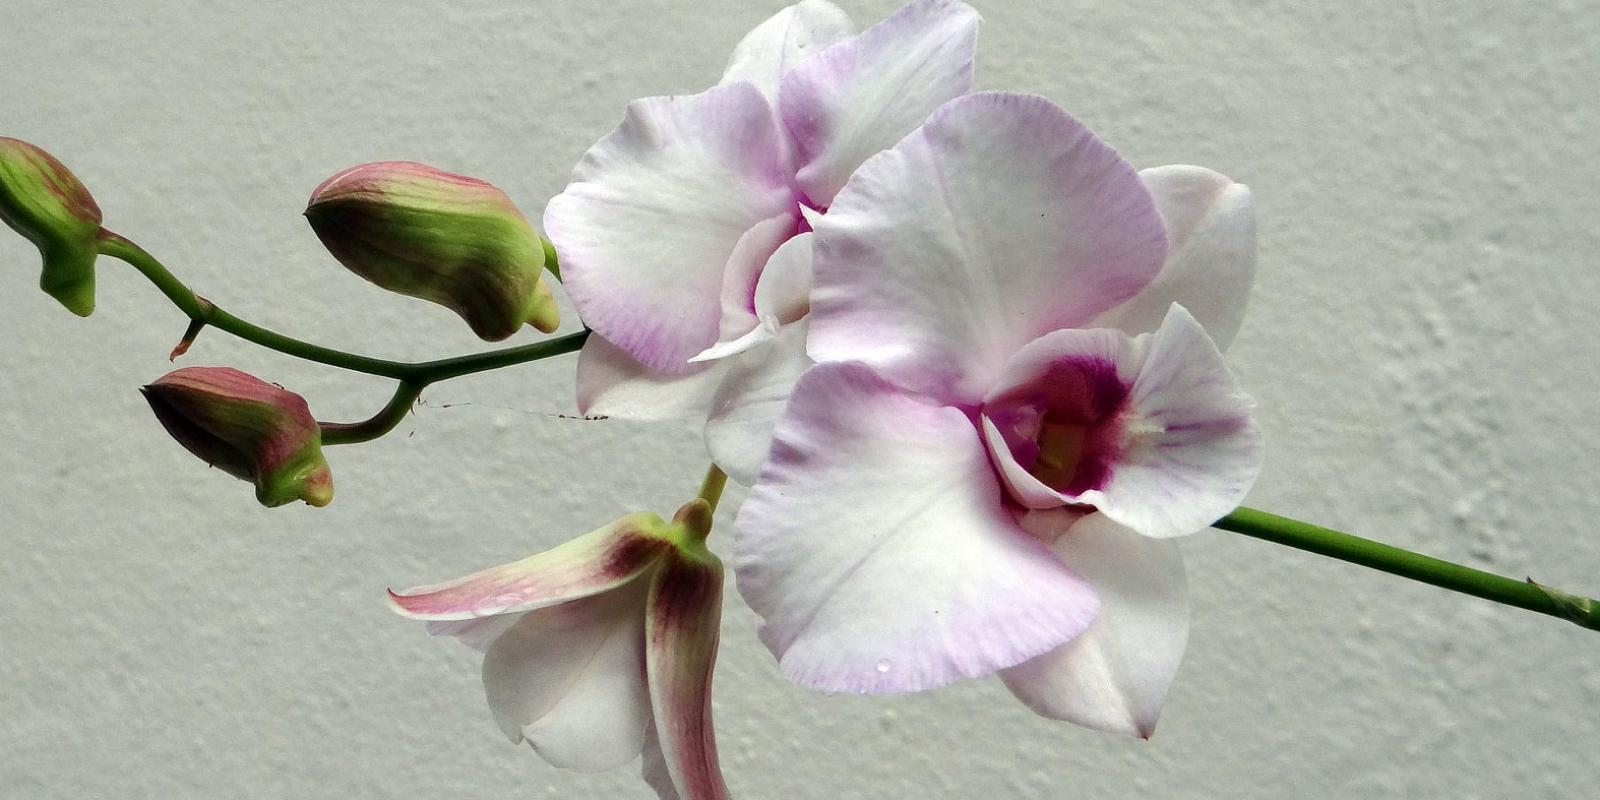 The best growers at Roobos wholesale for flowers and plants: De Hoog Orchids